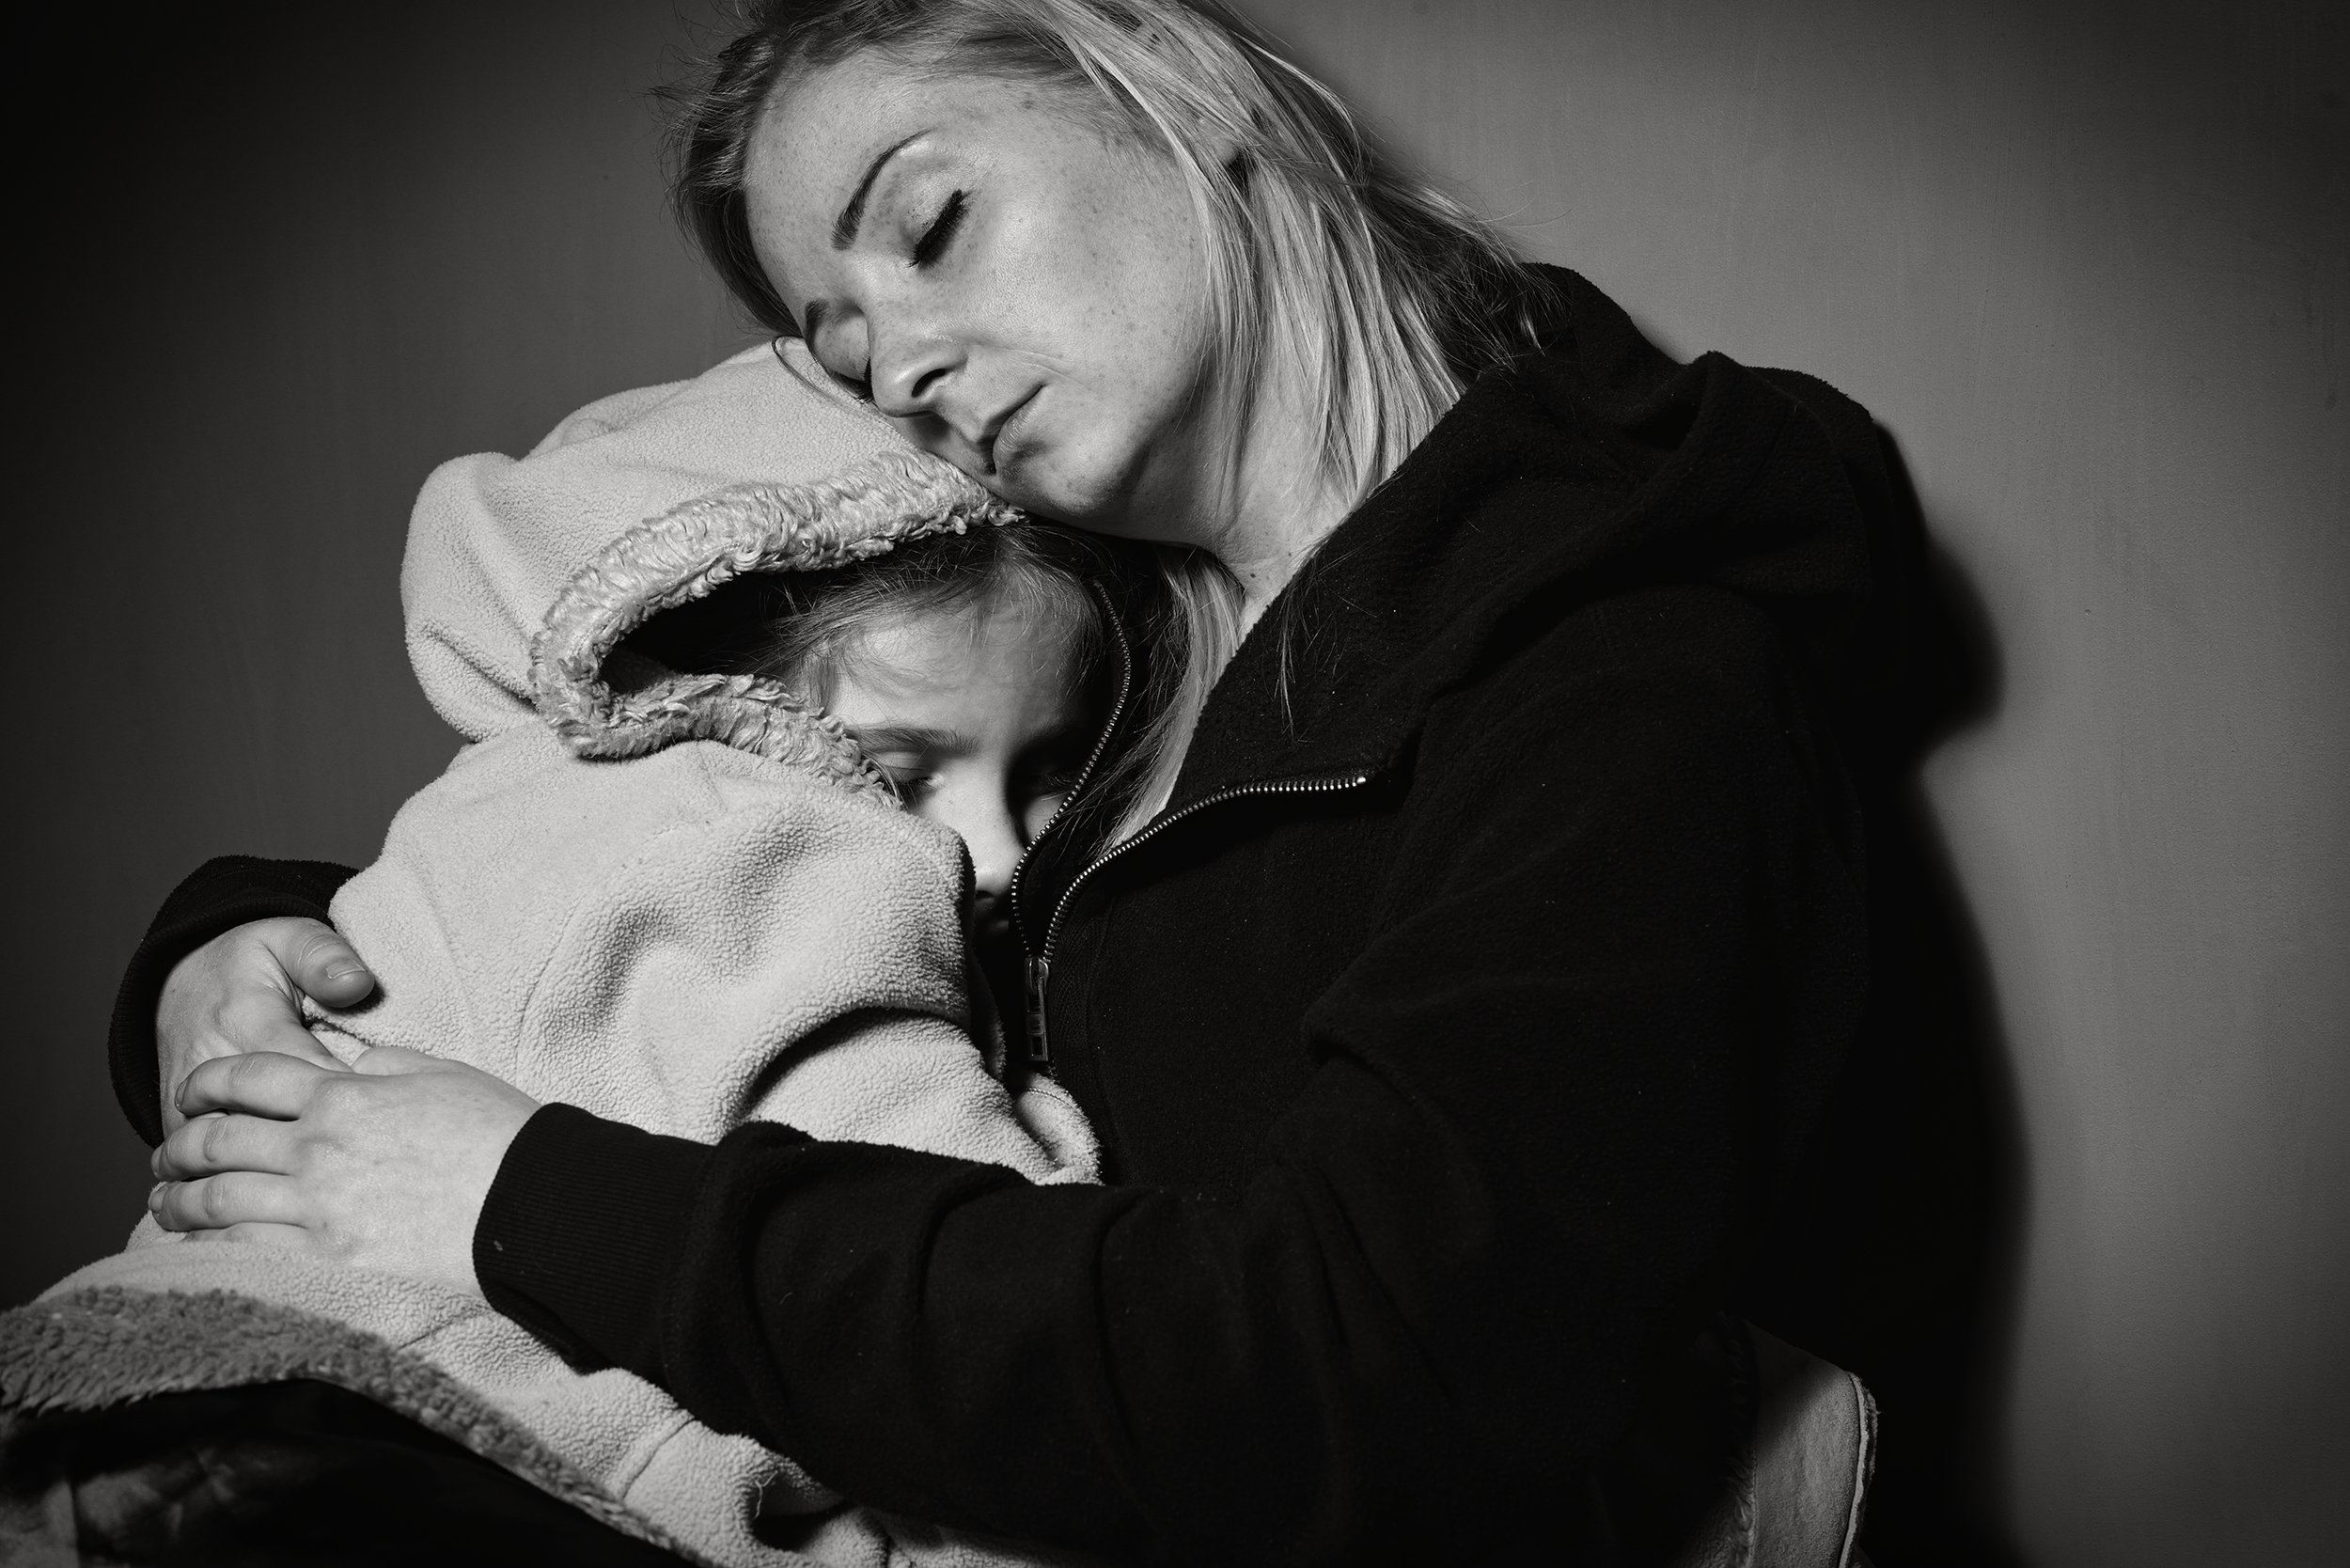 Mother embracing daughter, possible beneficiaries of Habitat for Humanity